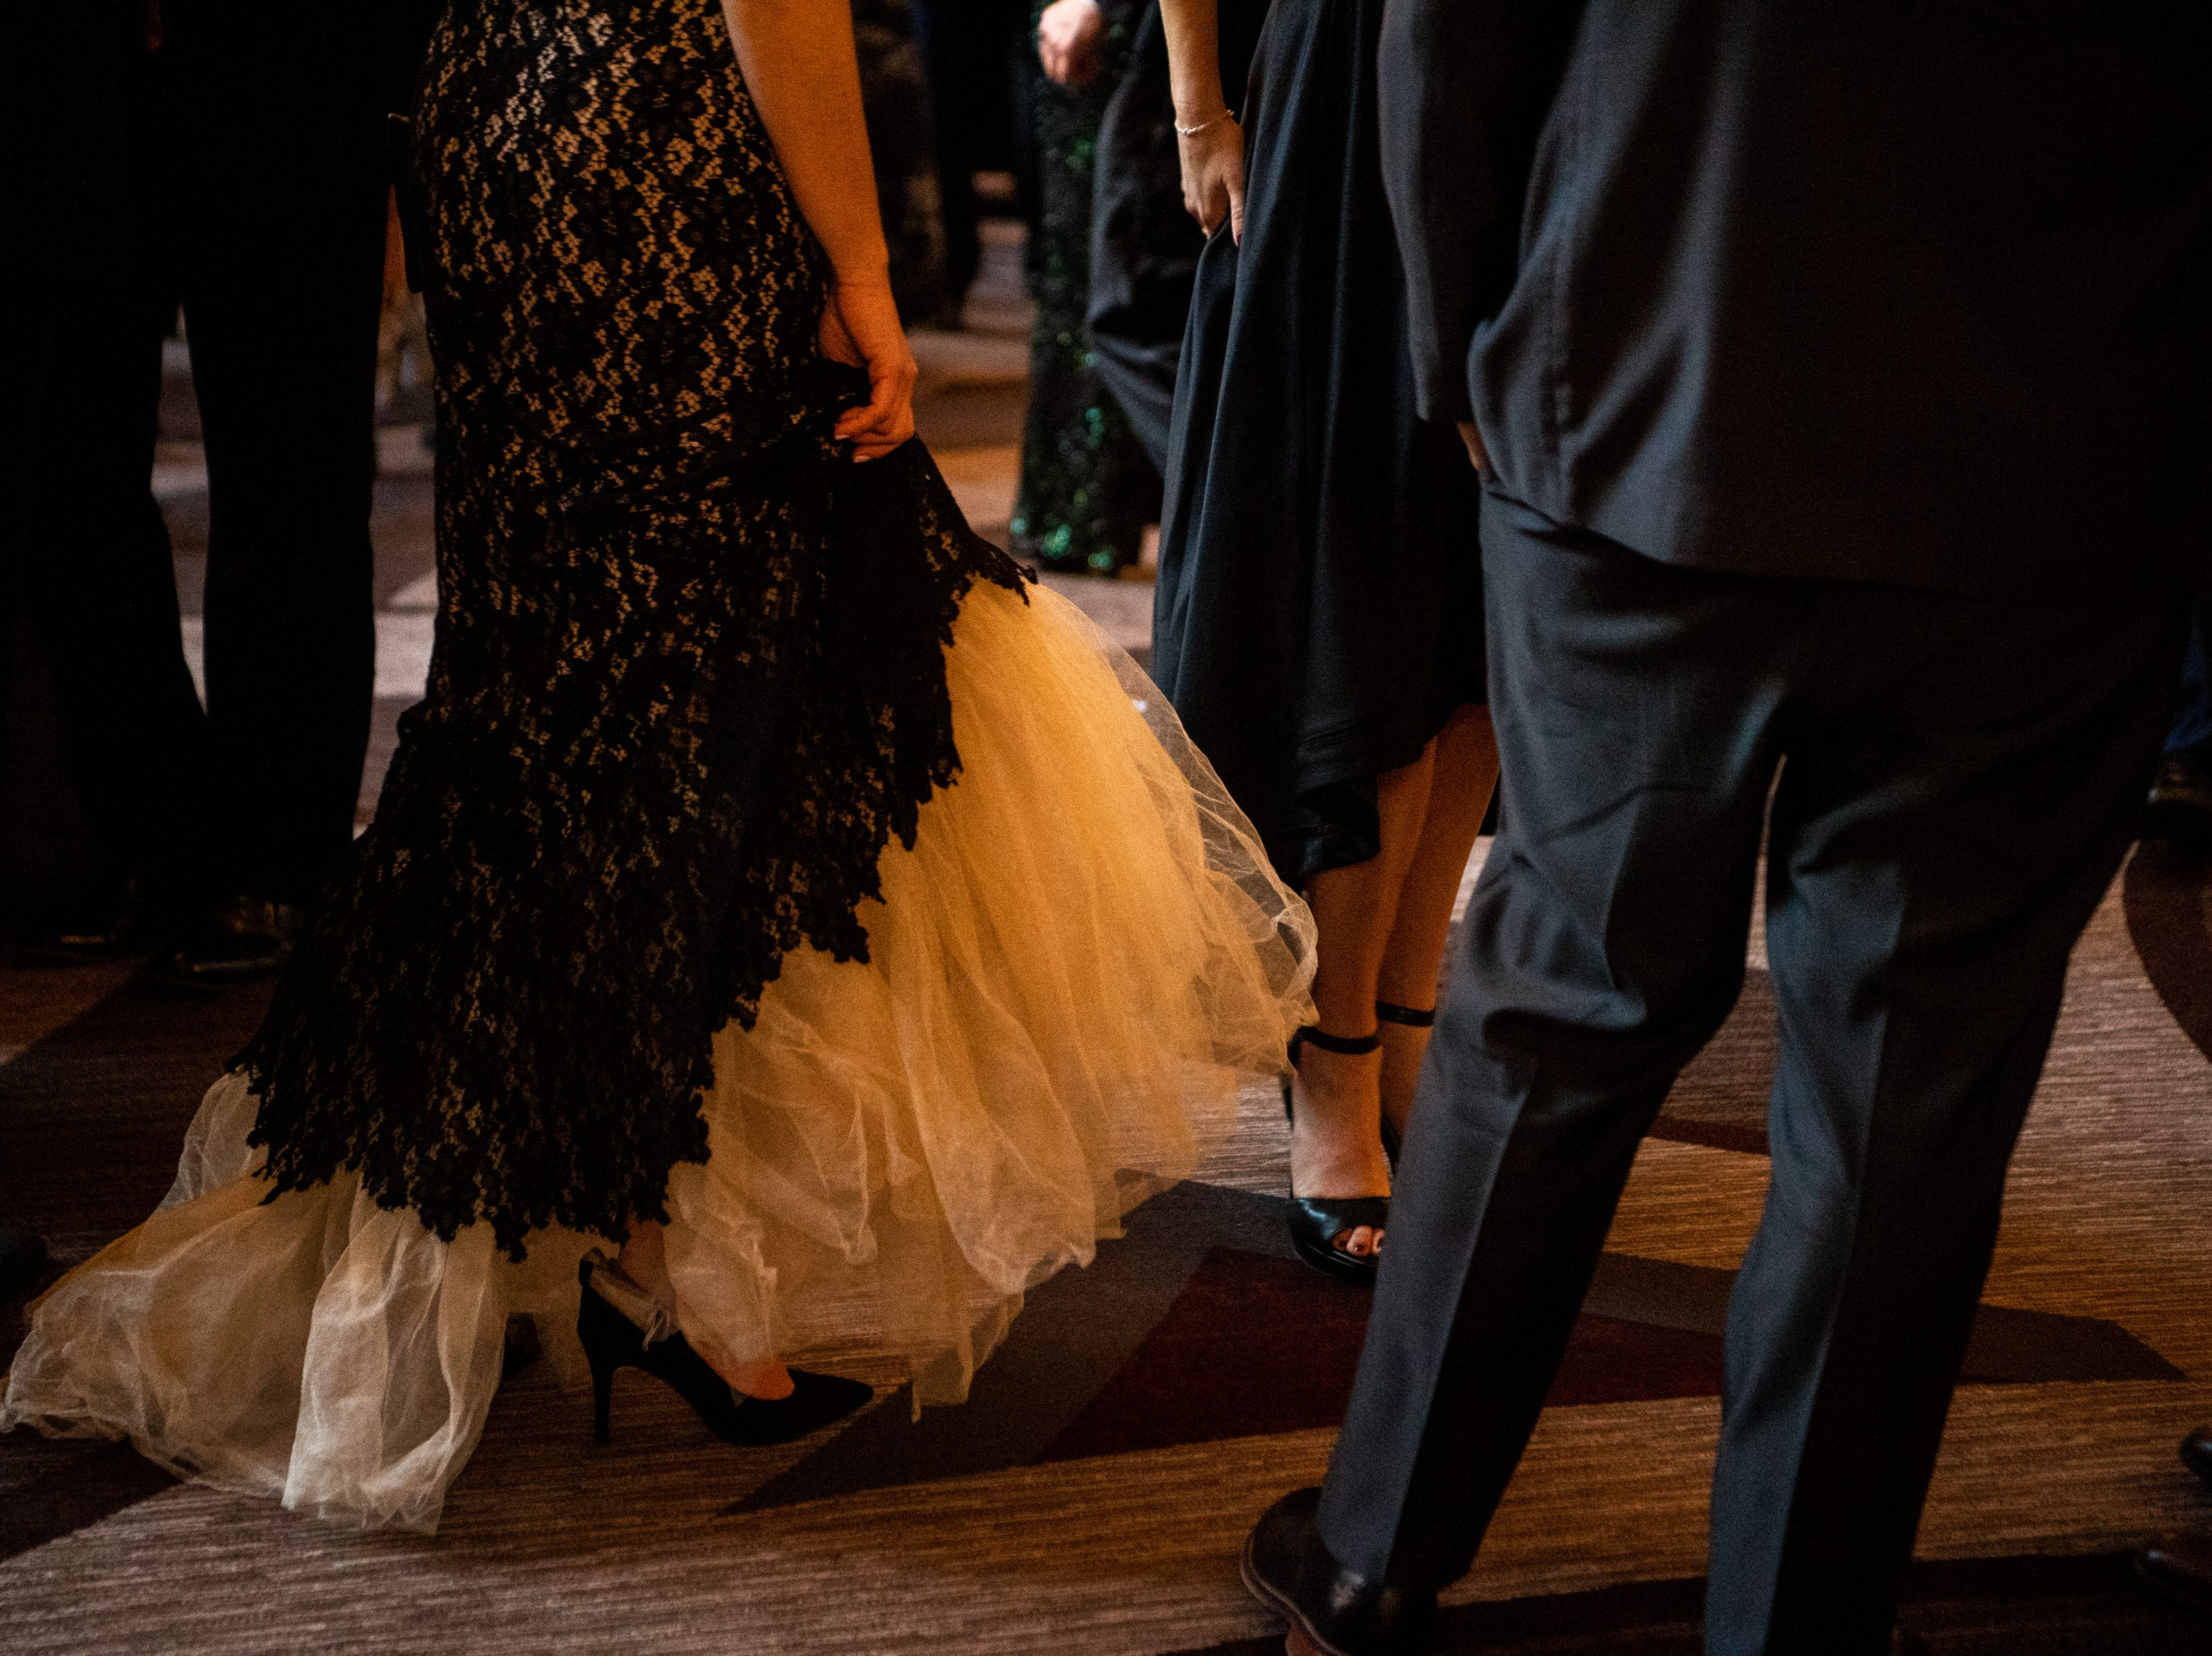 A woman holds her dress as she walks during Austin Peay State University's annual Candlelight Ball at the Omni Nashville Hotel Saturday, March 16, 2019, in Nashville, Tenn.